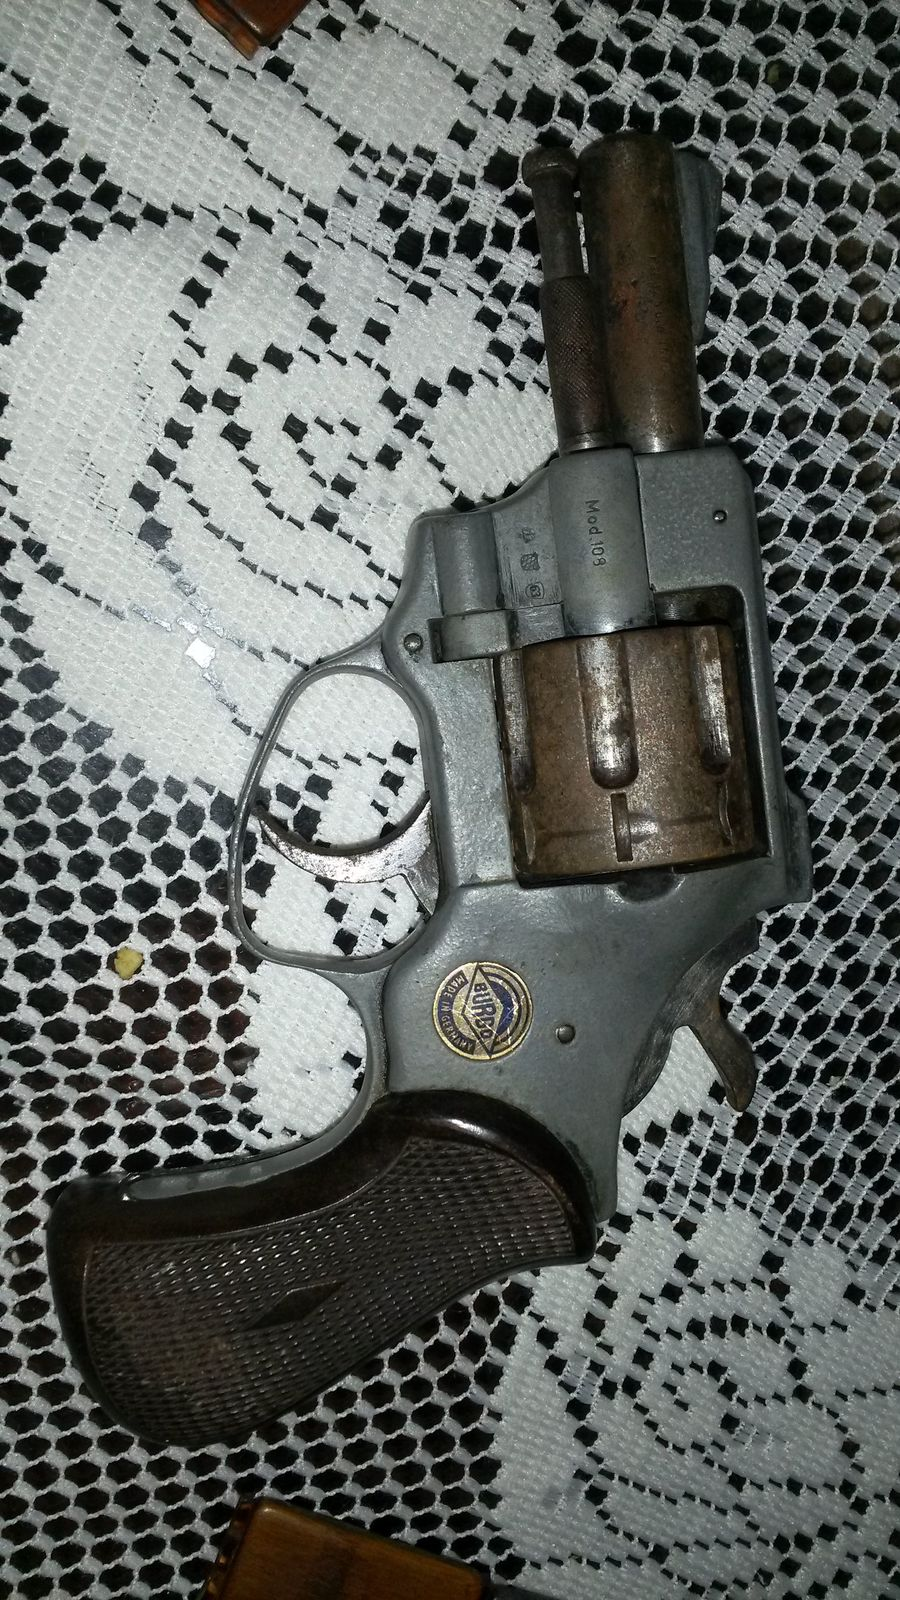 I Have A Burgo Model 108 Made In Germany 7 Shot With Serial